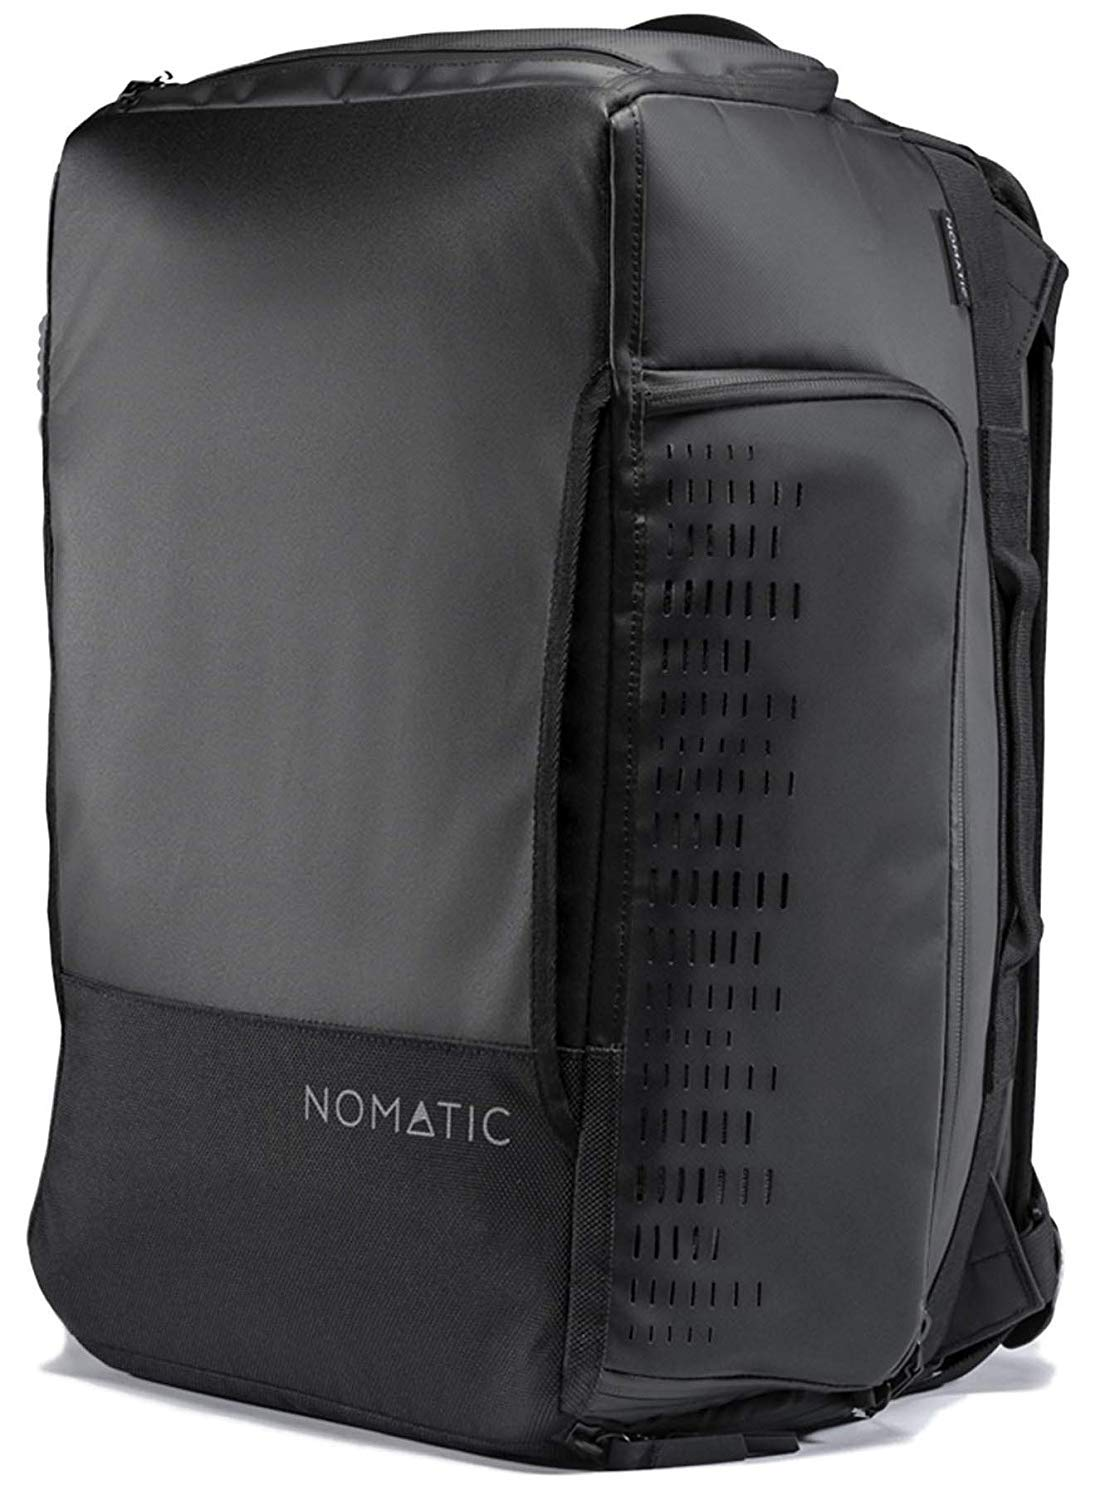 NOMATIC 30L Travel Bag Water Resistant Gym Pack Carryon